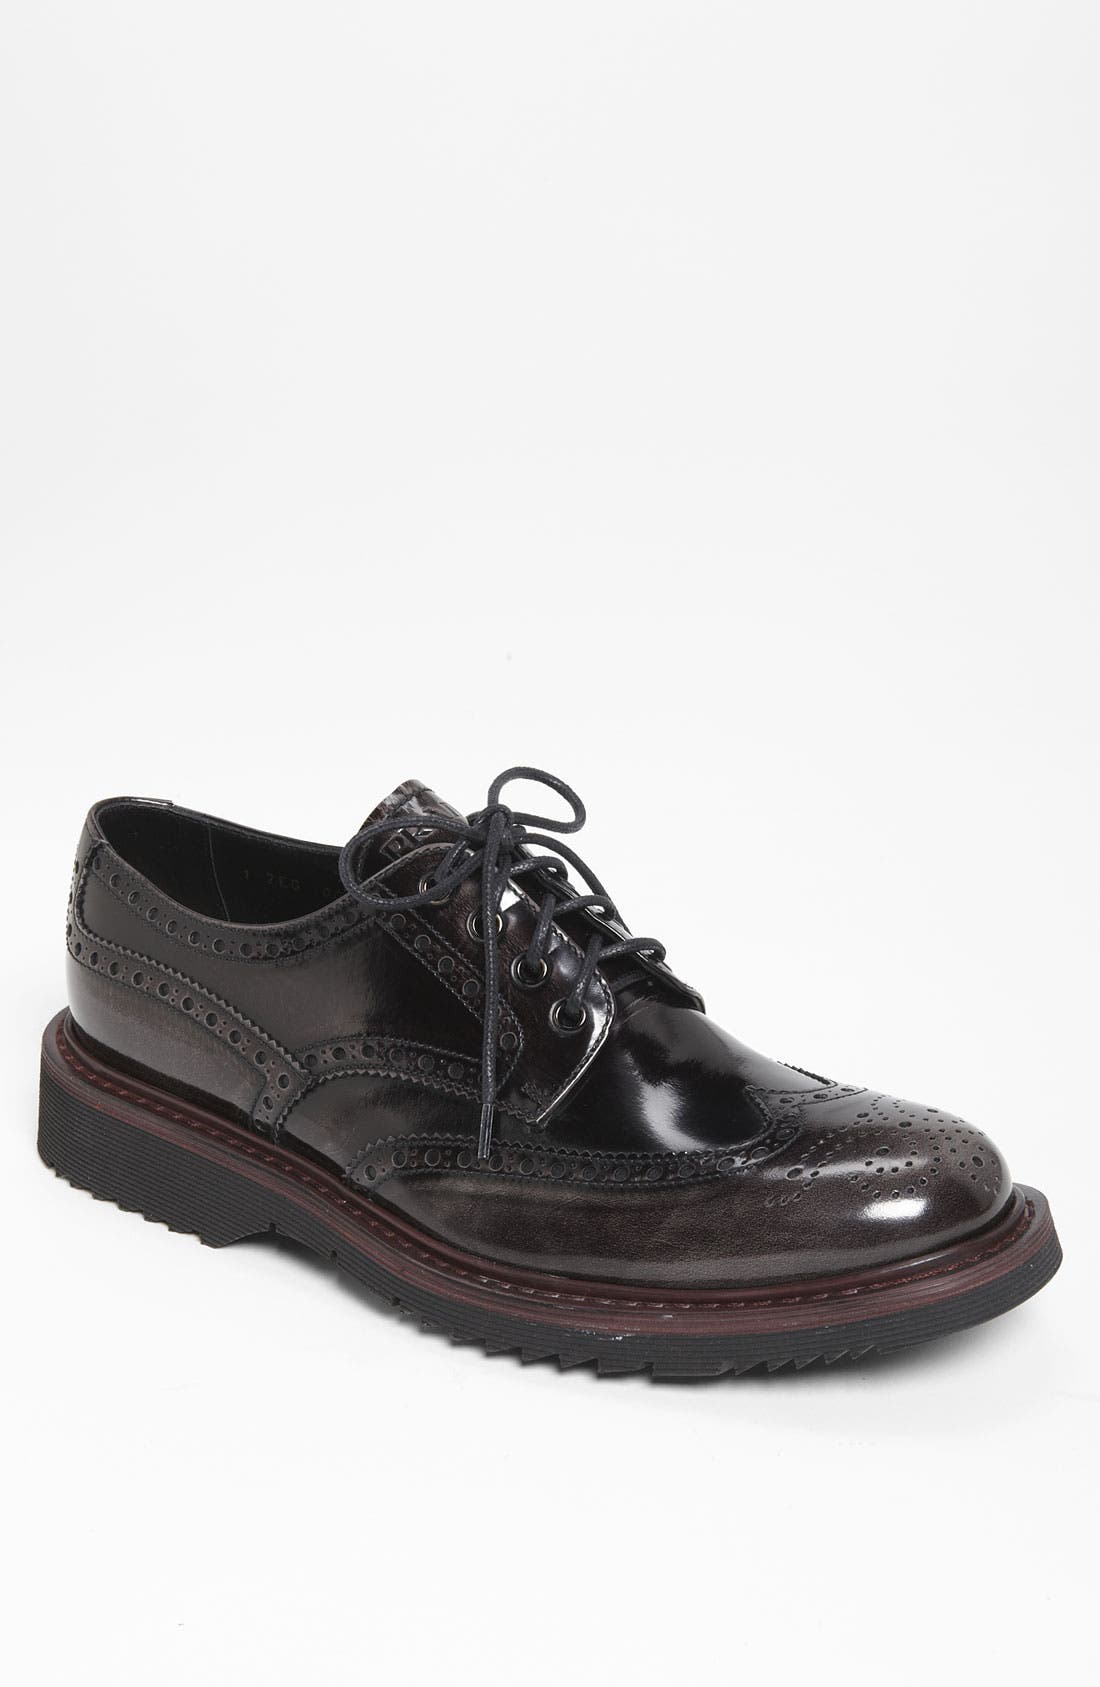 Alternate Image 1 Selected - Prada Double Sole Wingtip